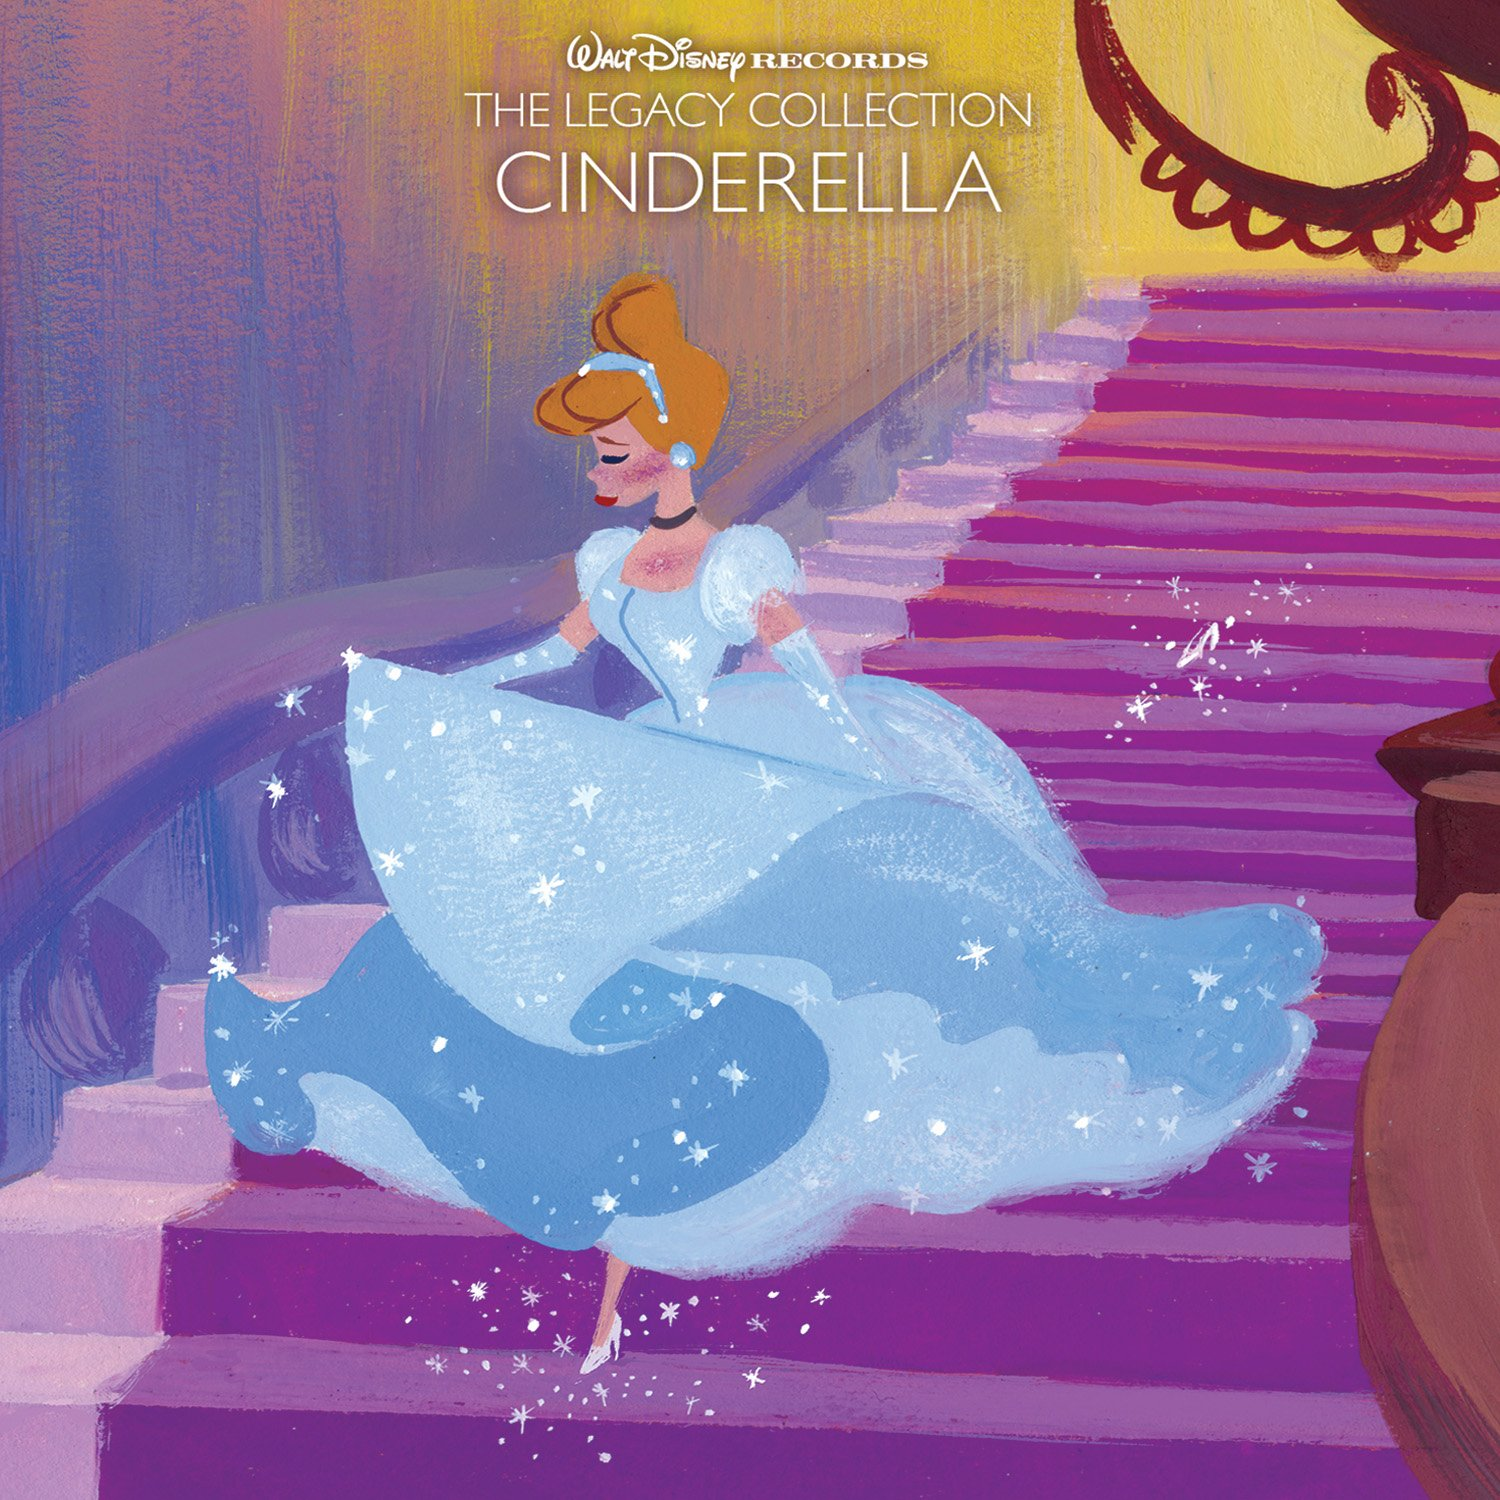 Various walt disney records the legacy collection cinderella 2 various walt disney records the legacy collection cinderella 2 cd amazon music altavistaventures Image collections